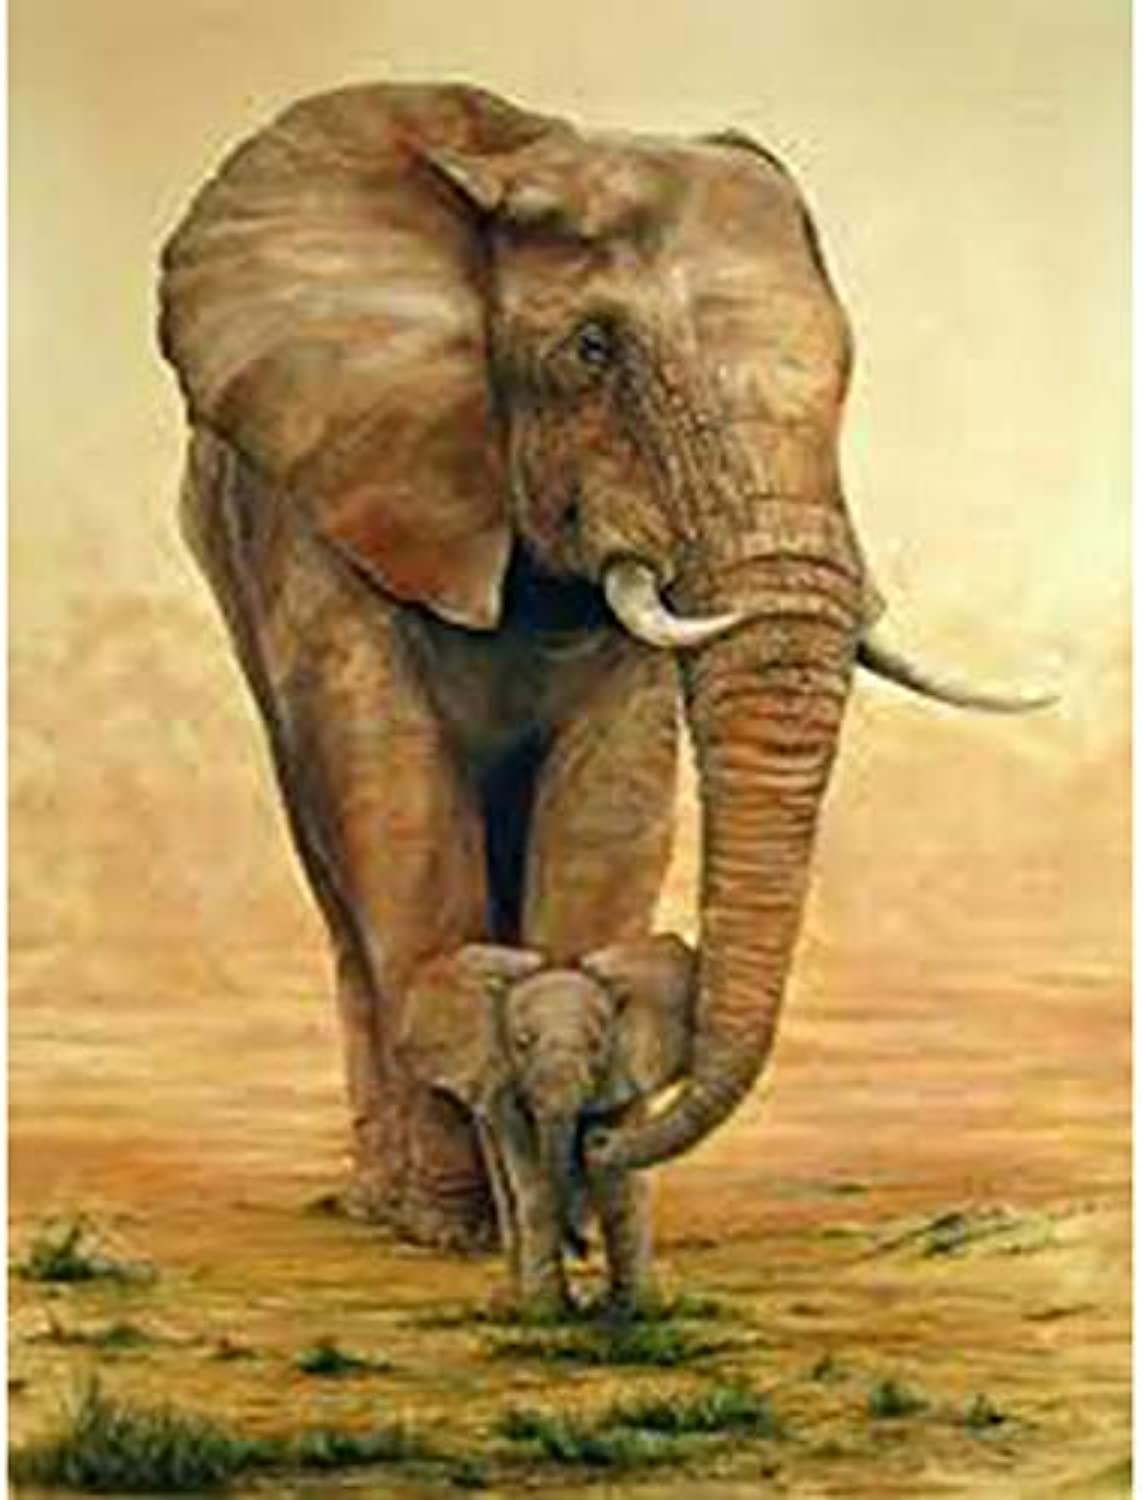 DIY Oil Paint by Number Kit for Adults Beginner 16x20 Inch - Animals Elephants,Drawing with Brushes Living Room Decor Decorations Gifts (Framed)